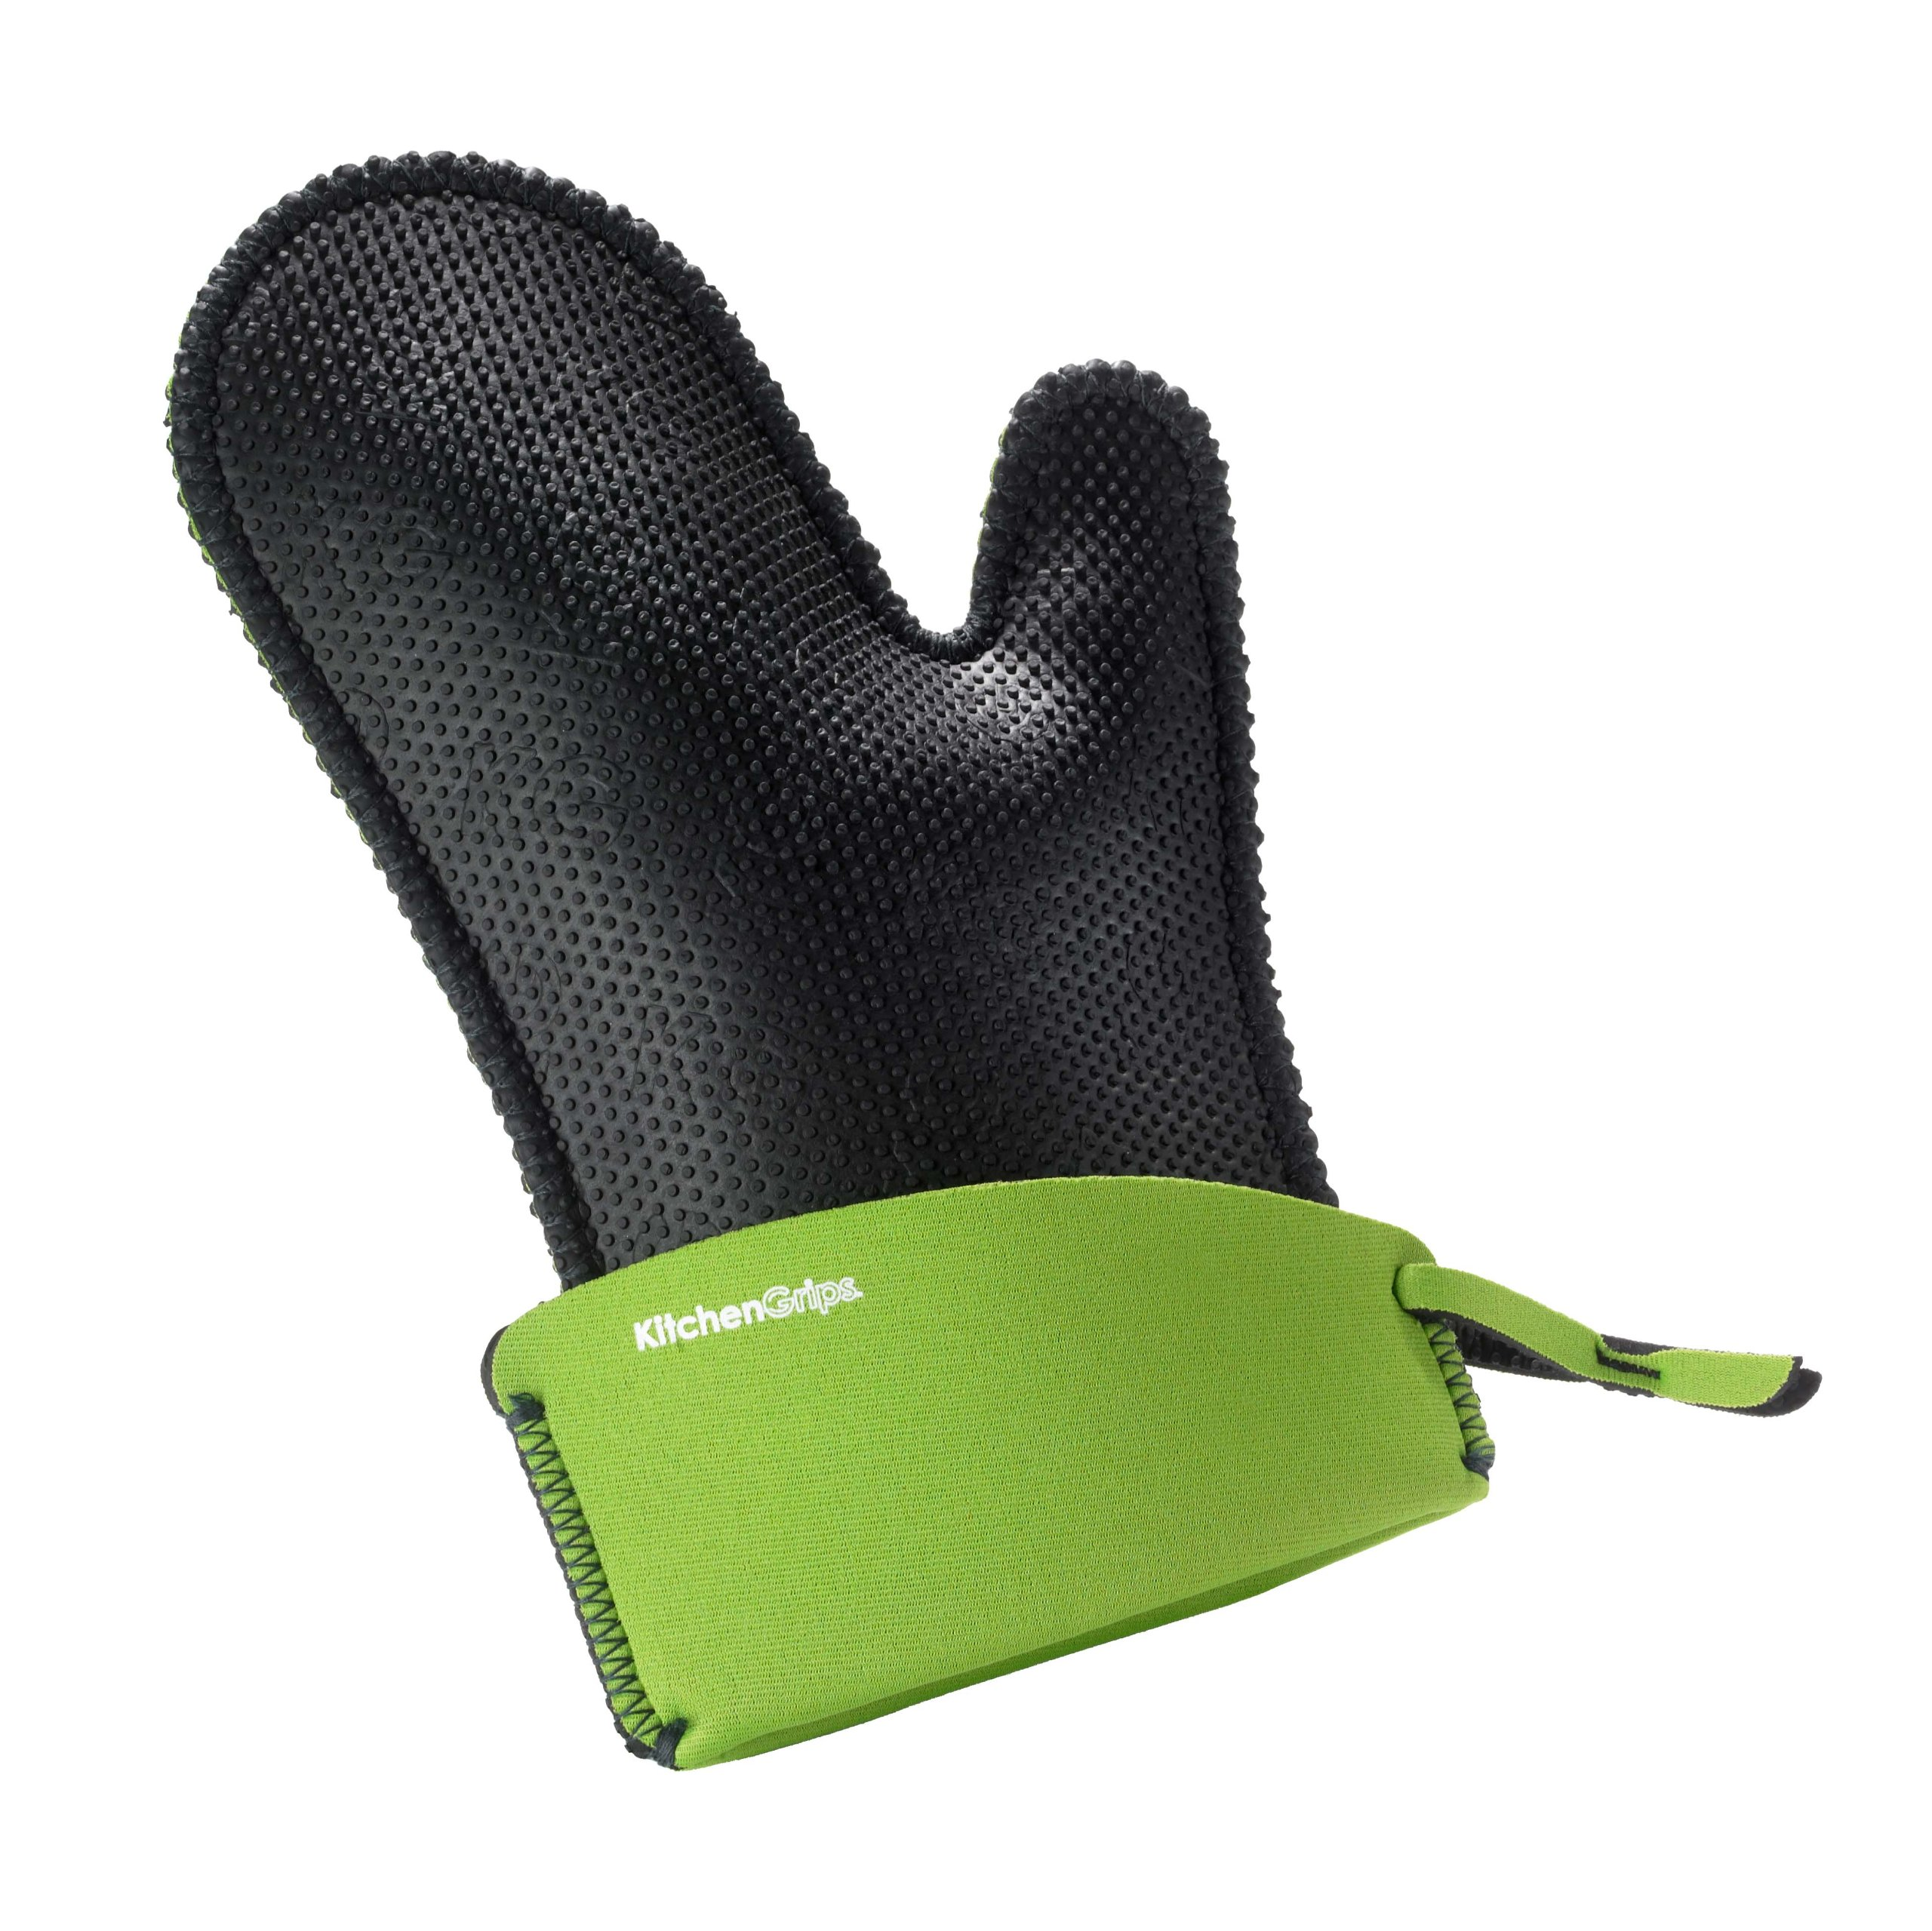 Kitchen Grips Chef's Mitt, Large, Black/Lime